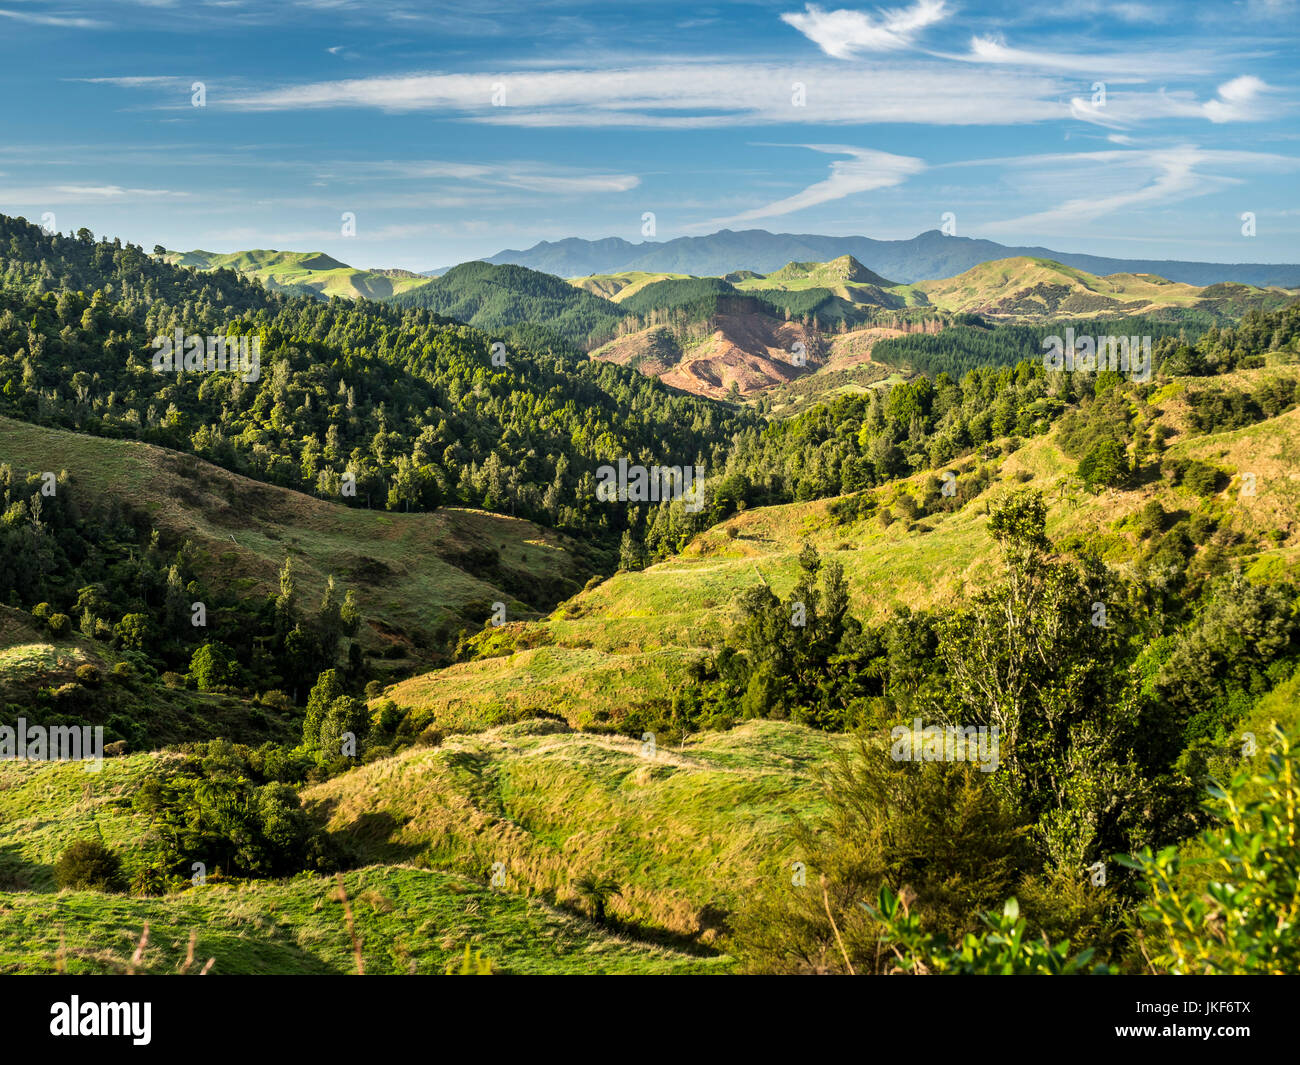 New Zealand, North Island, Region Waikato, scenics - Stock Image